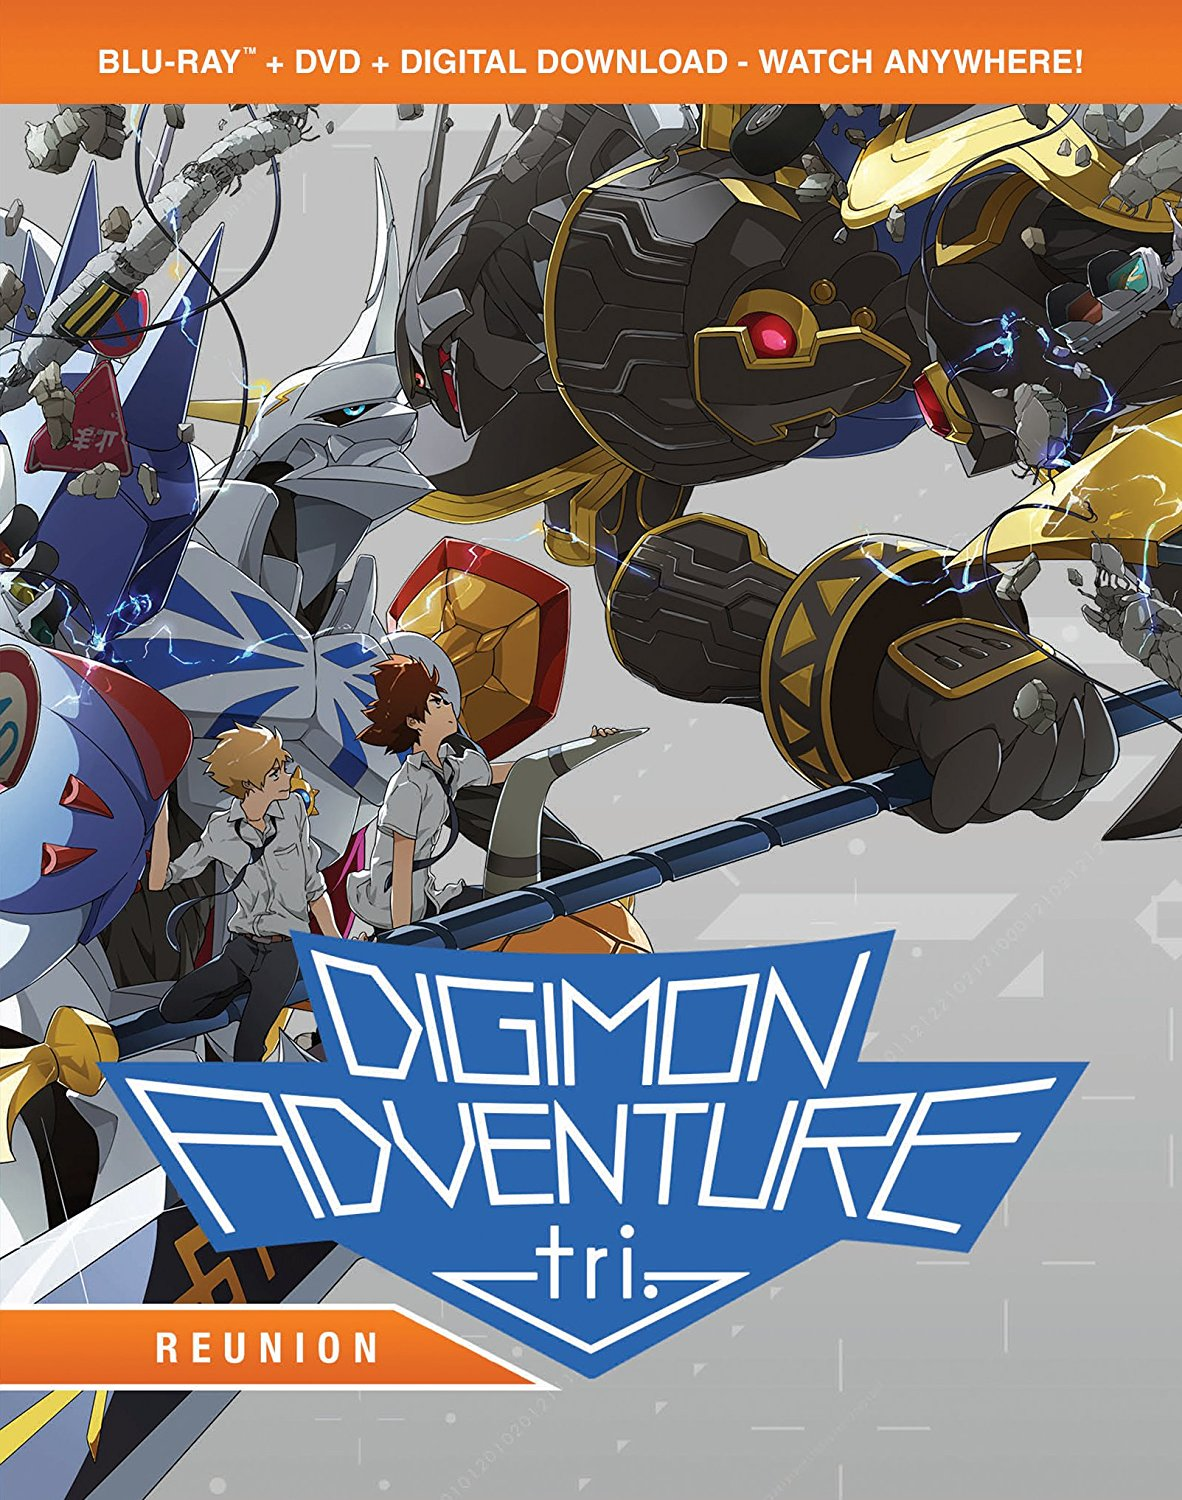 Digimon Adventure tri Reunion Blu-Ray/DVD 826663175950